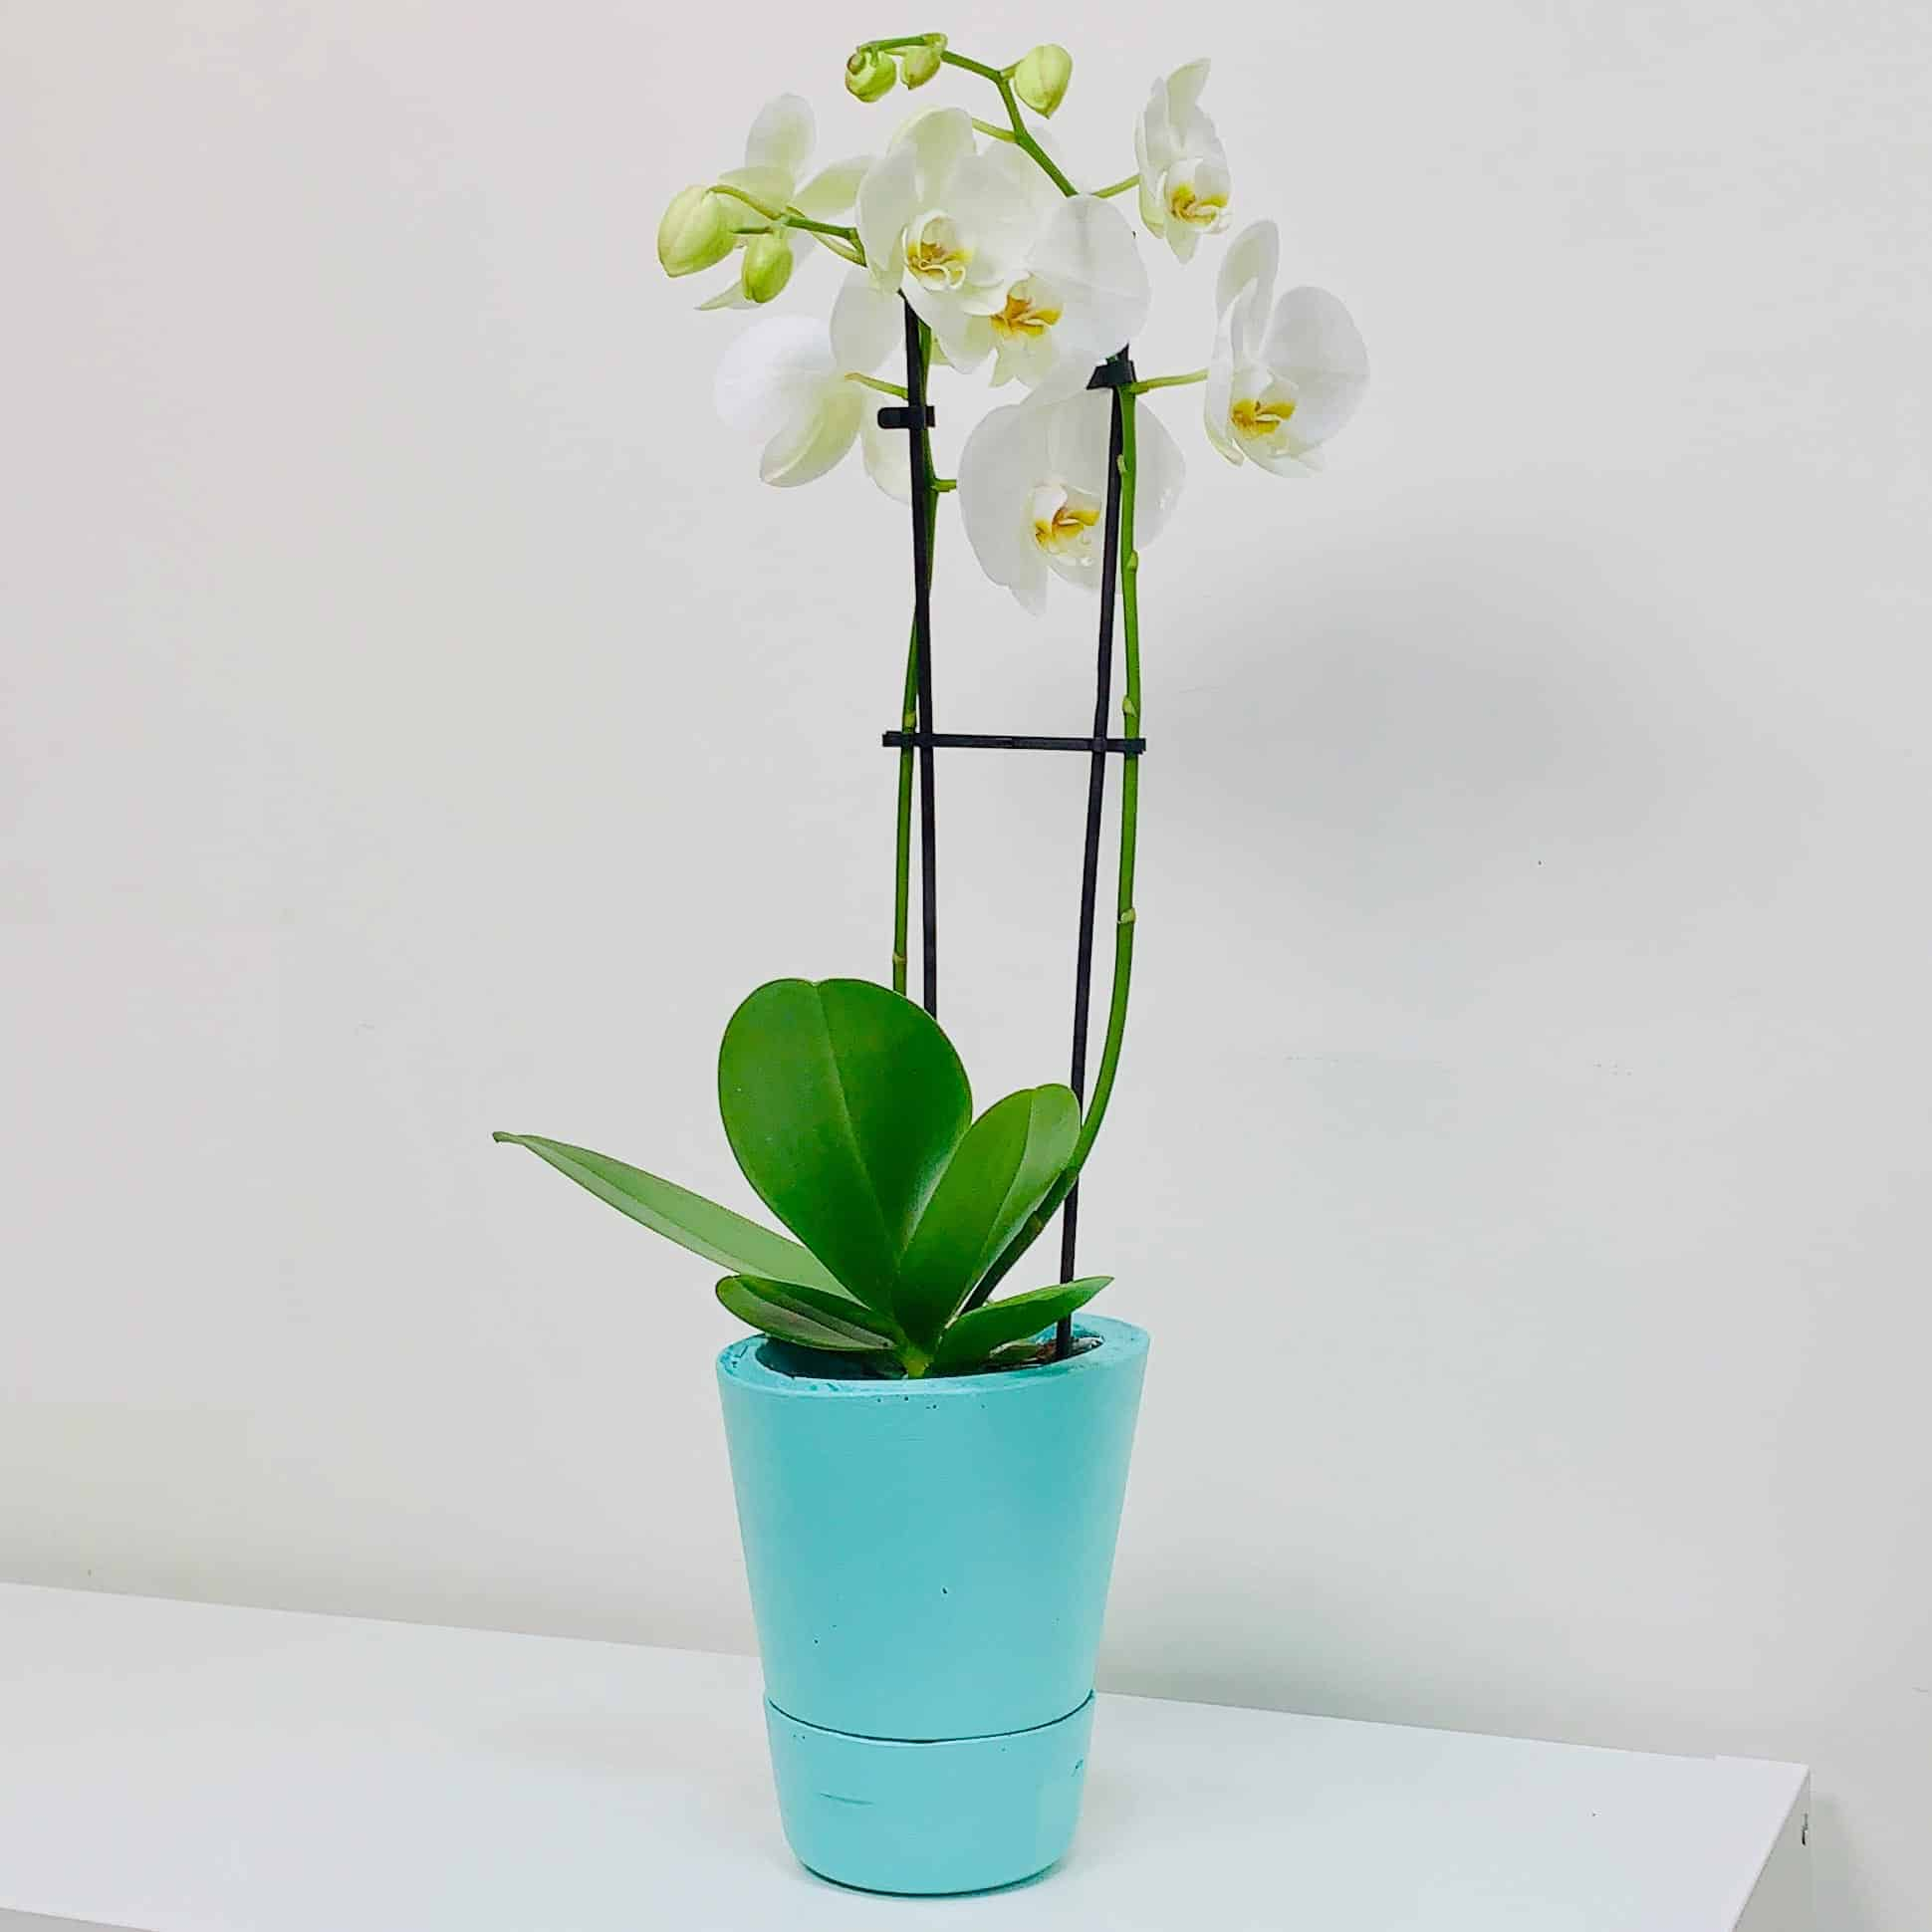 orchid in concrete DIY self watering planter that is turquoise